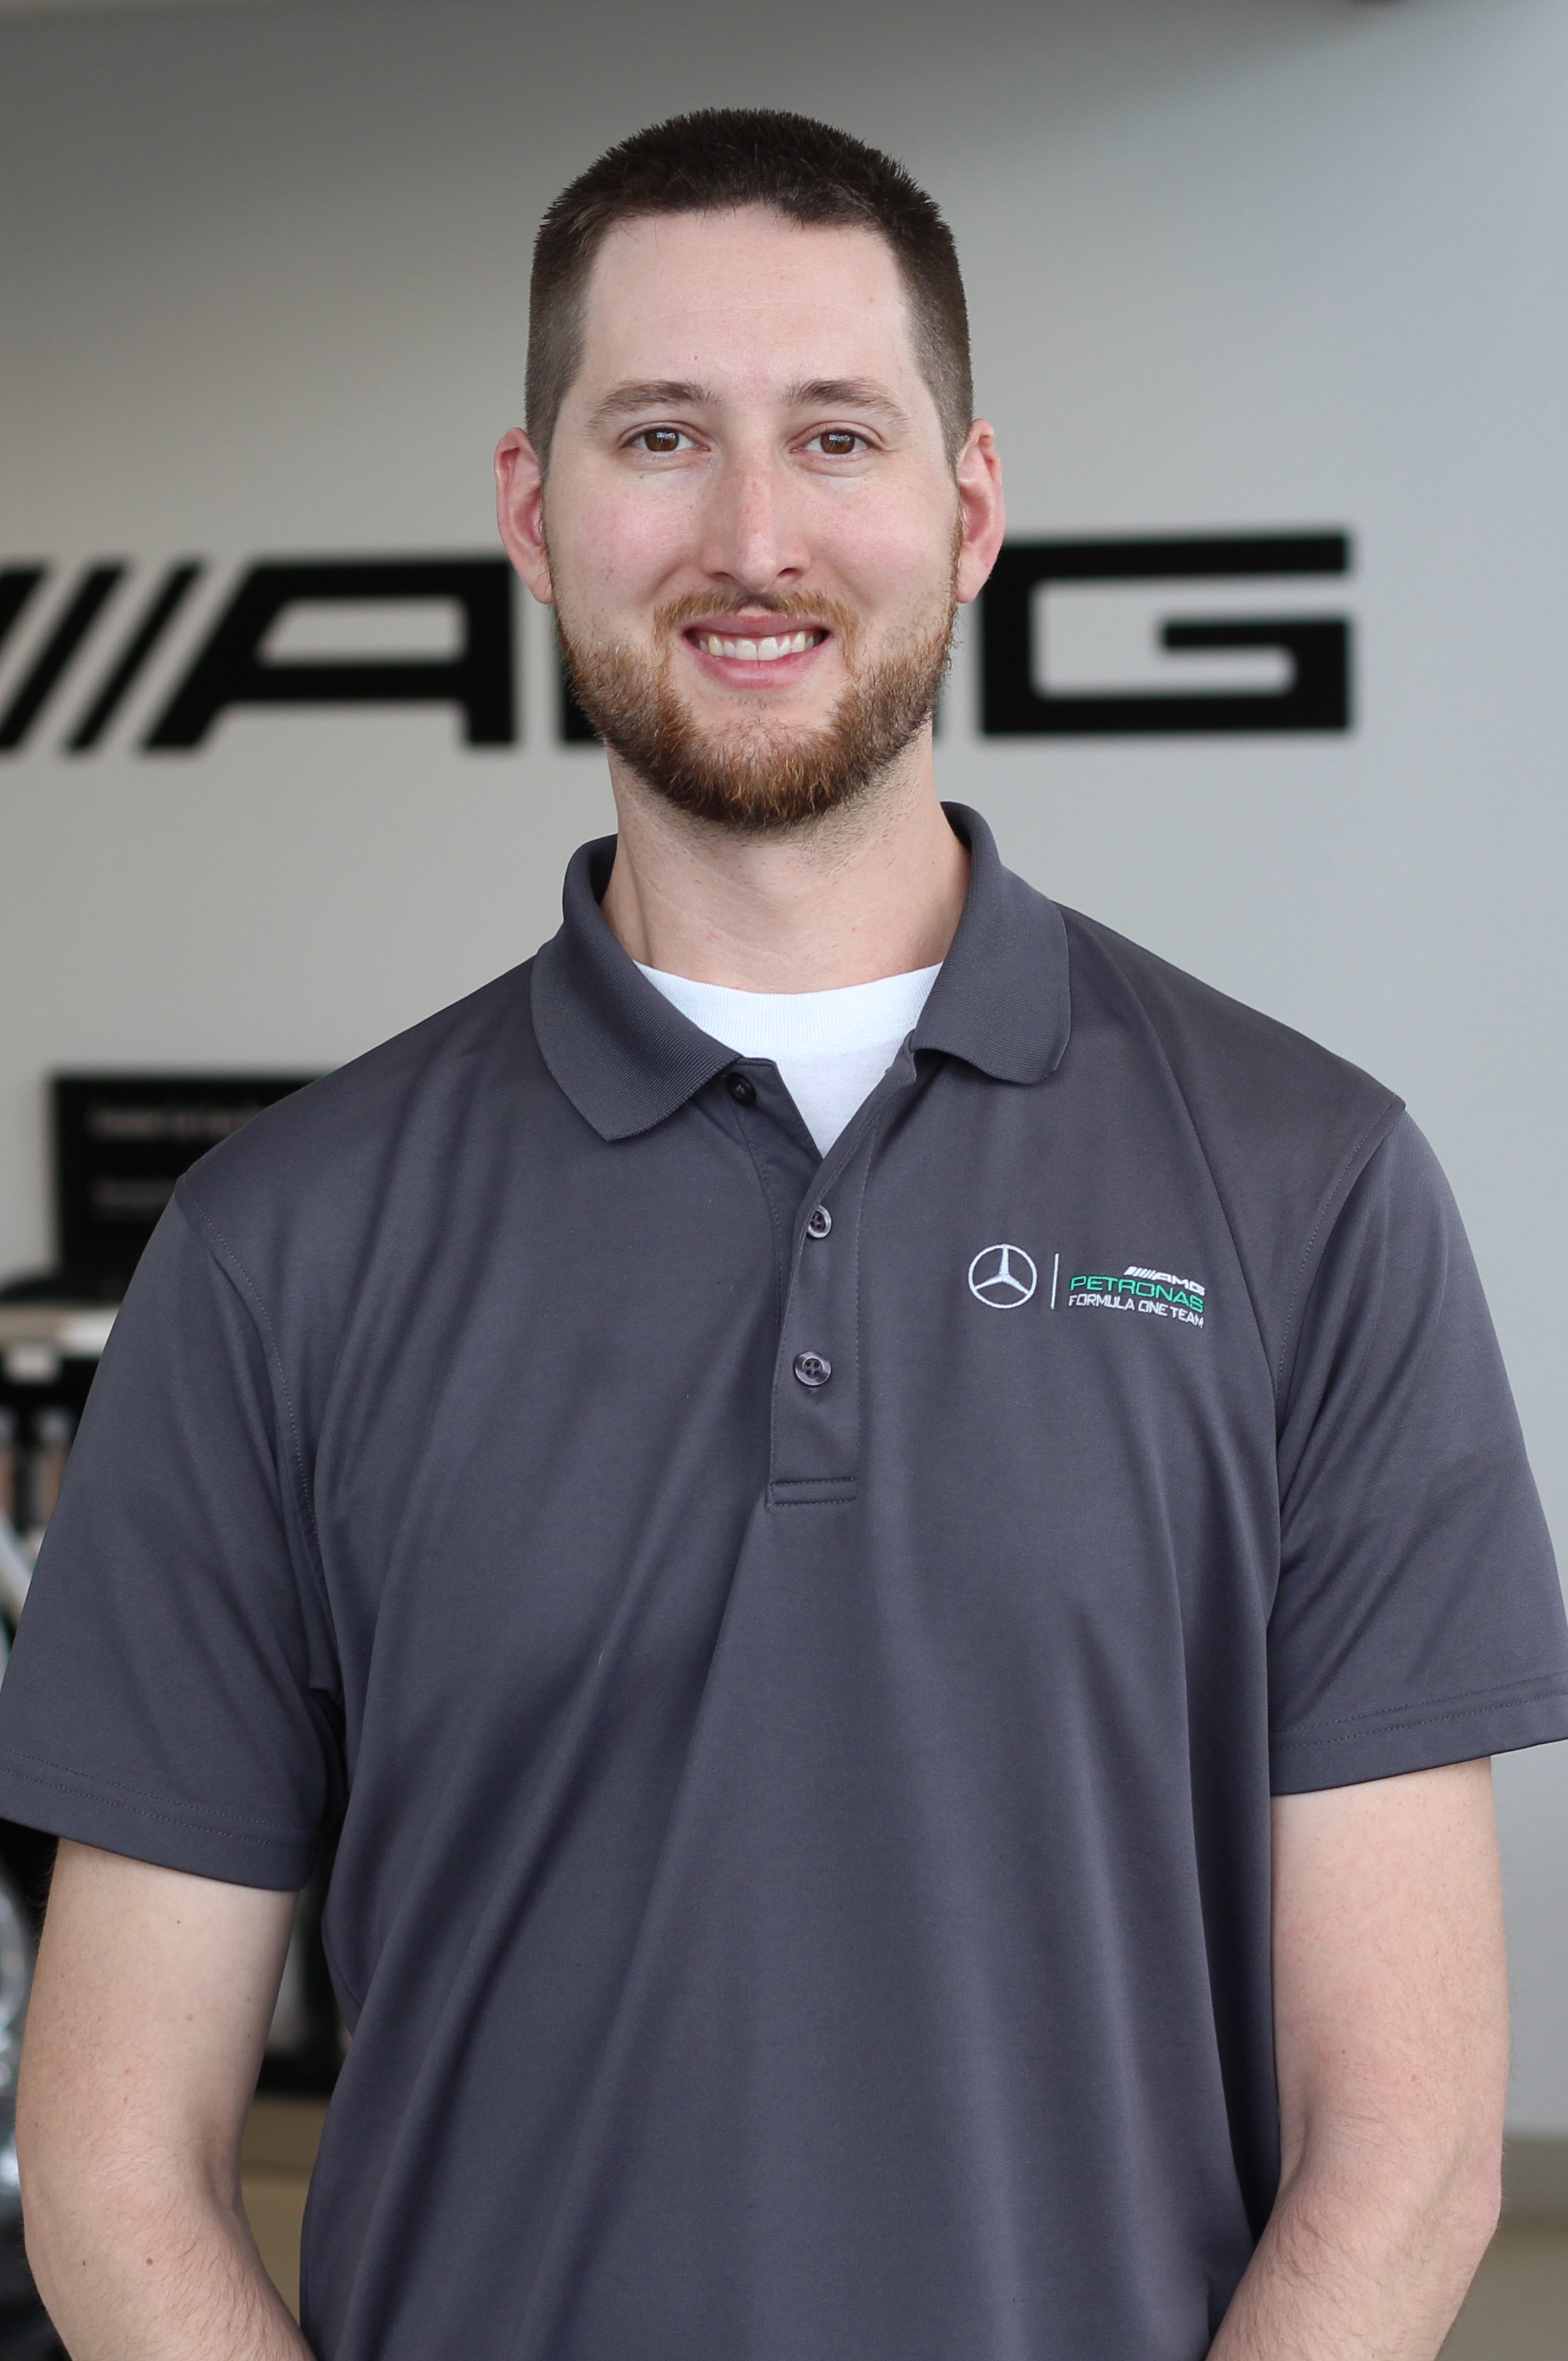 Jordan Batten - Commercial Fleet Vans Manager